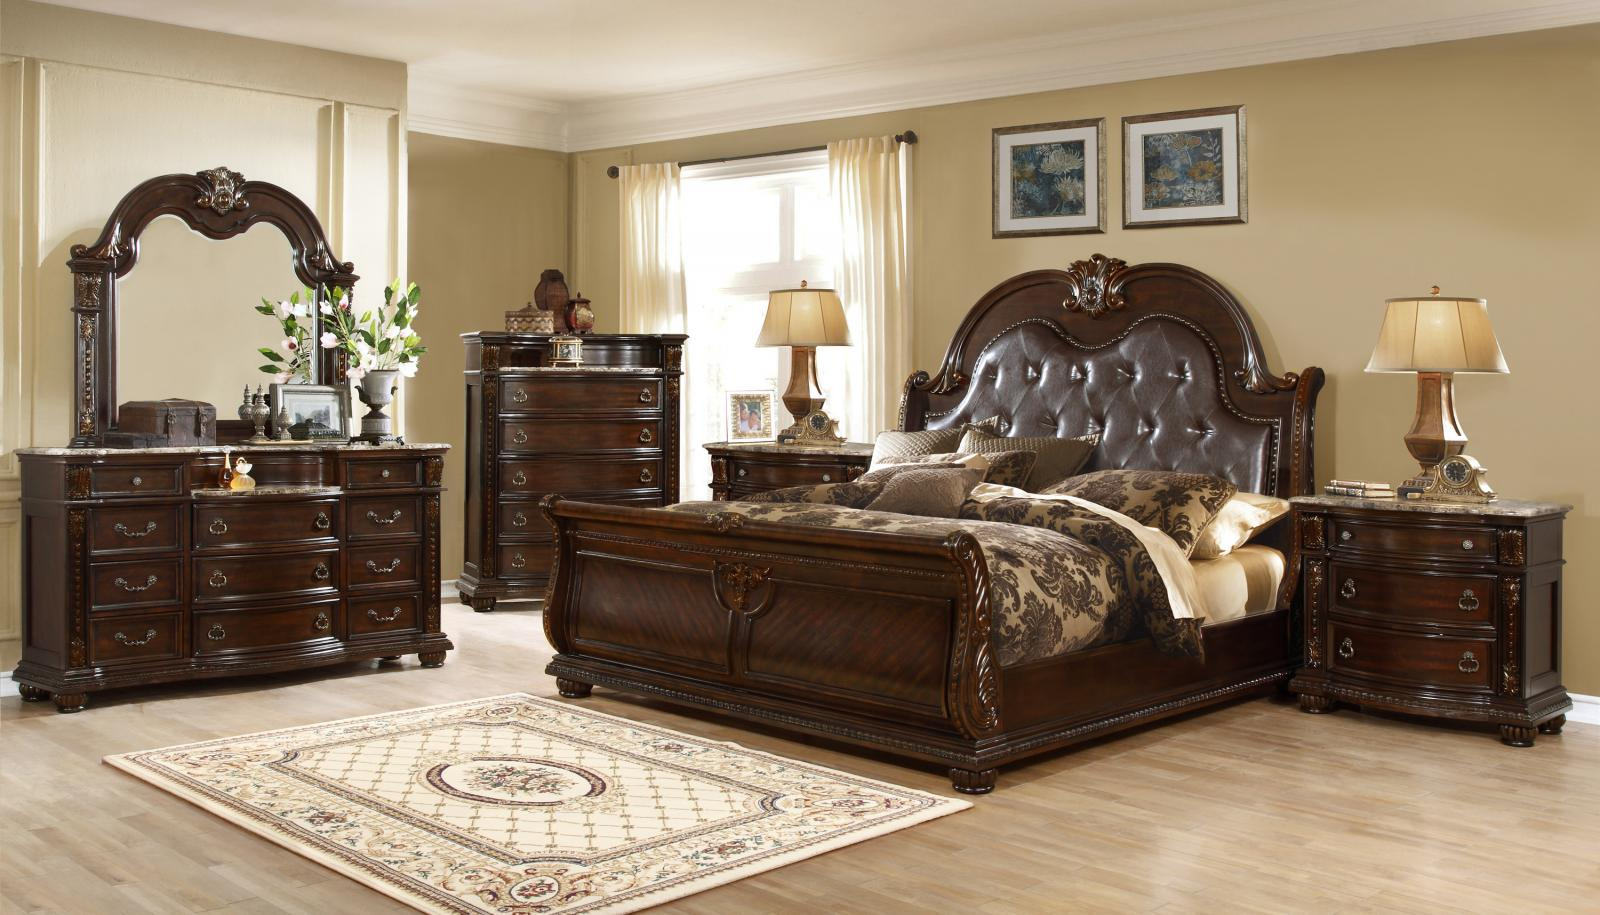 McFerran B9500 EK Amber Dark Cherry Finish Tufted Eastern King Bedroom Set  6Pcs   Walmart.com